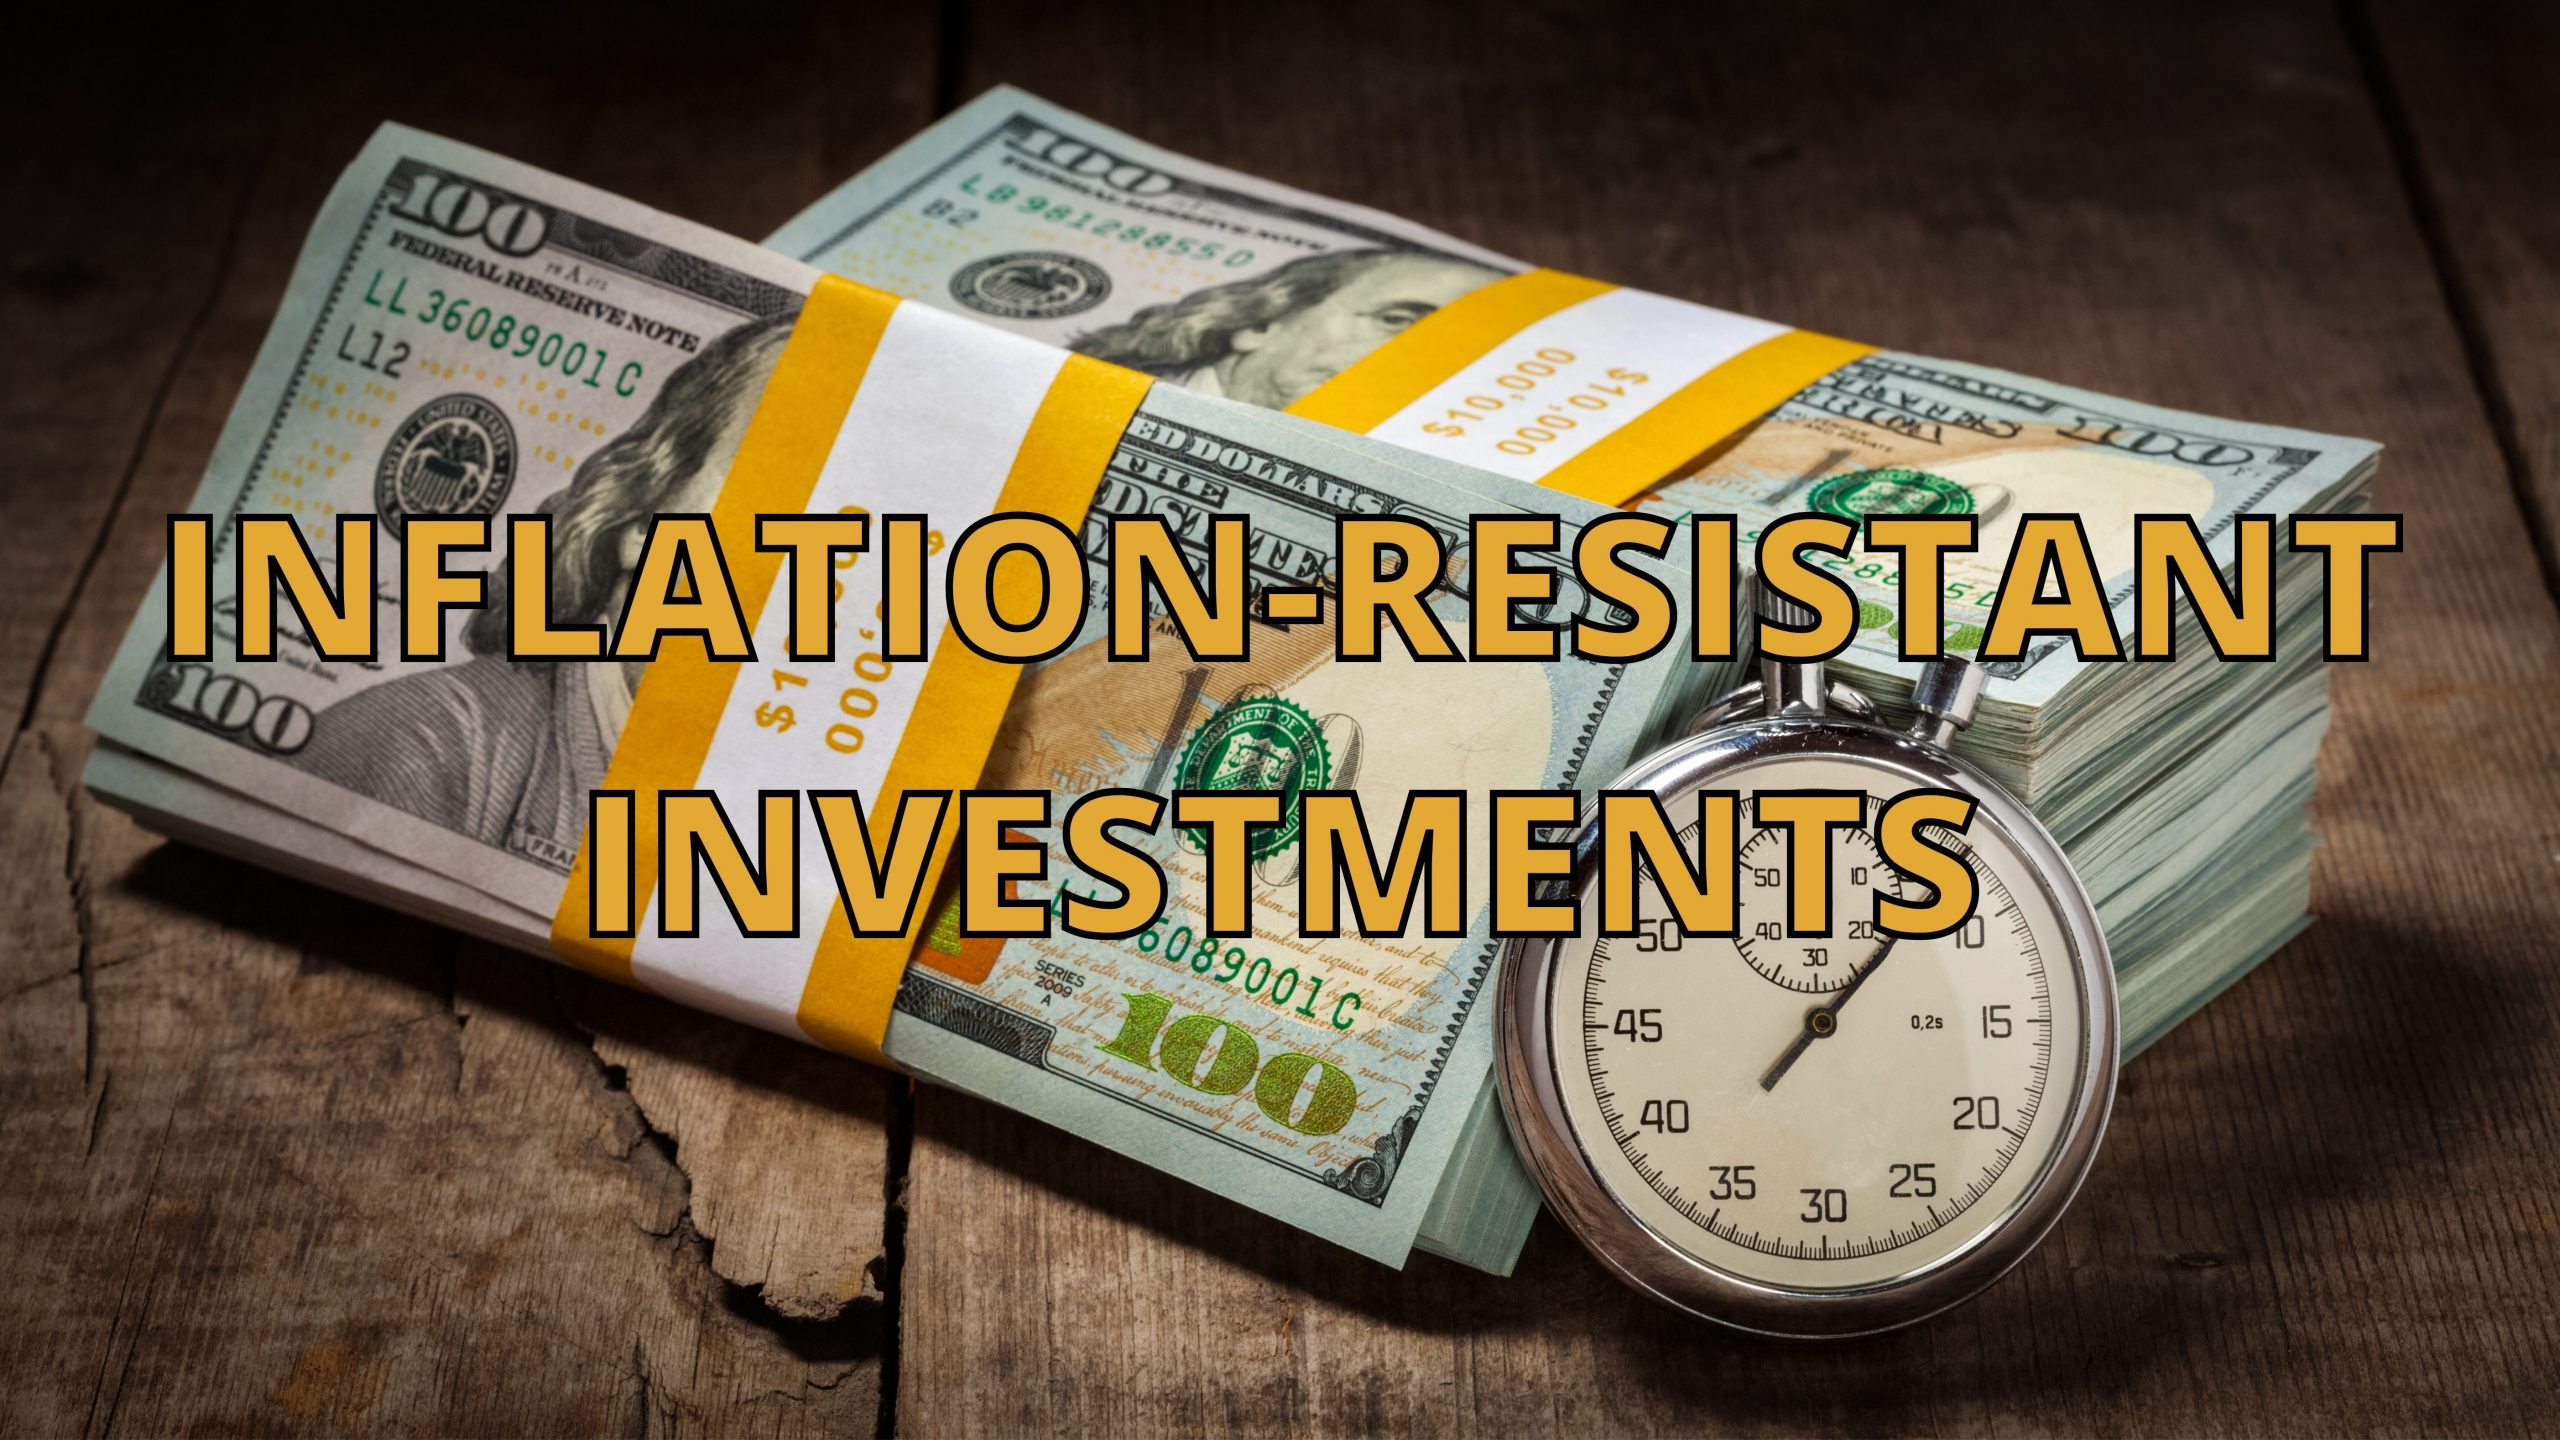 INFLATION-RESISTANT INVESTMENTS hero image